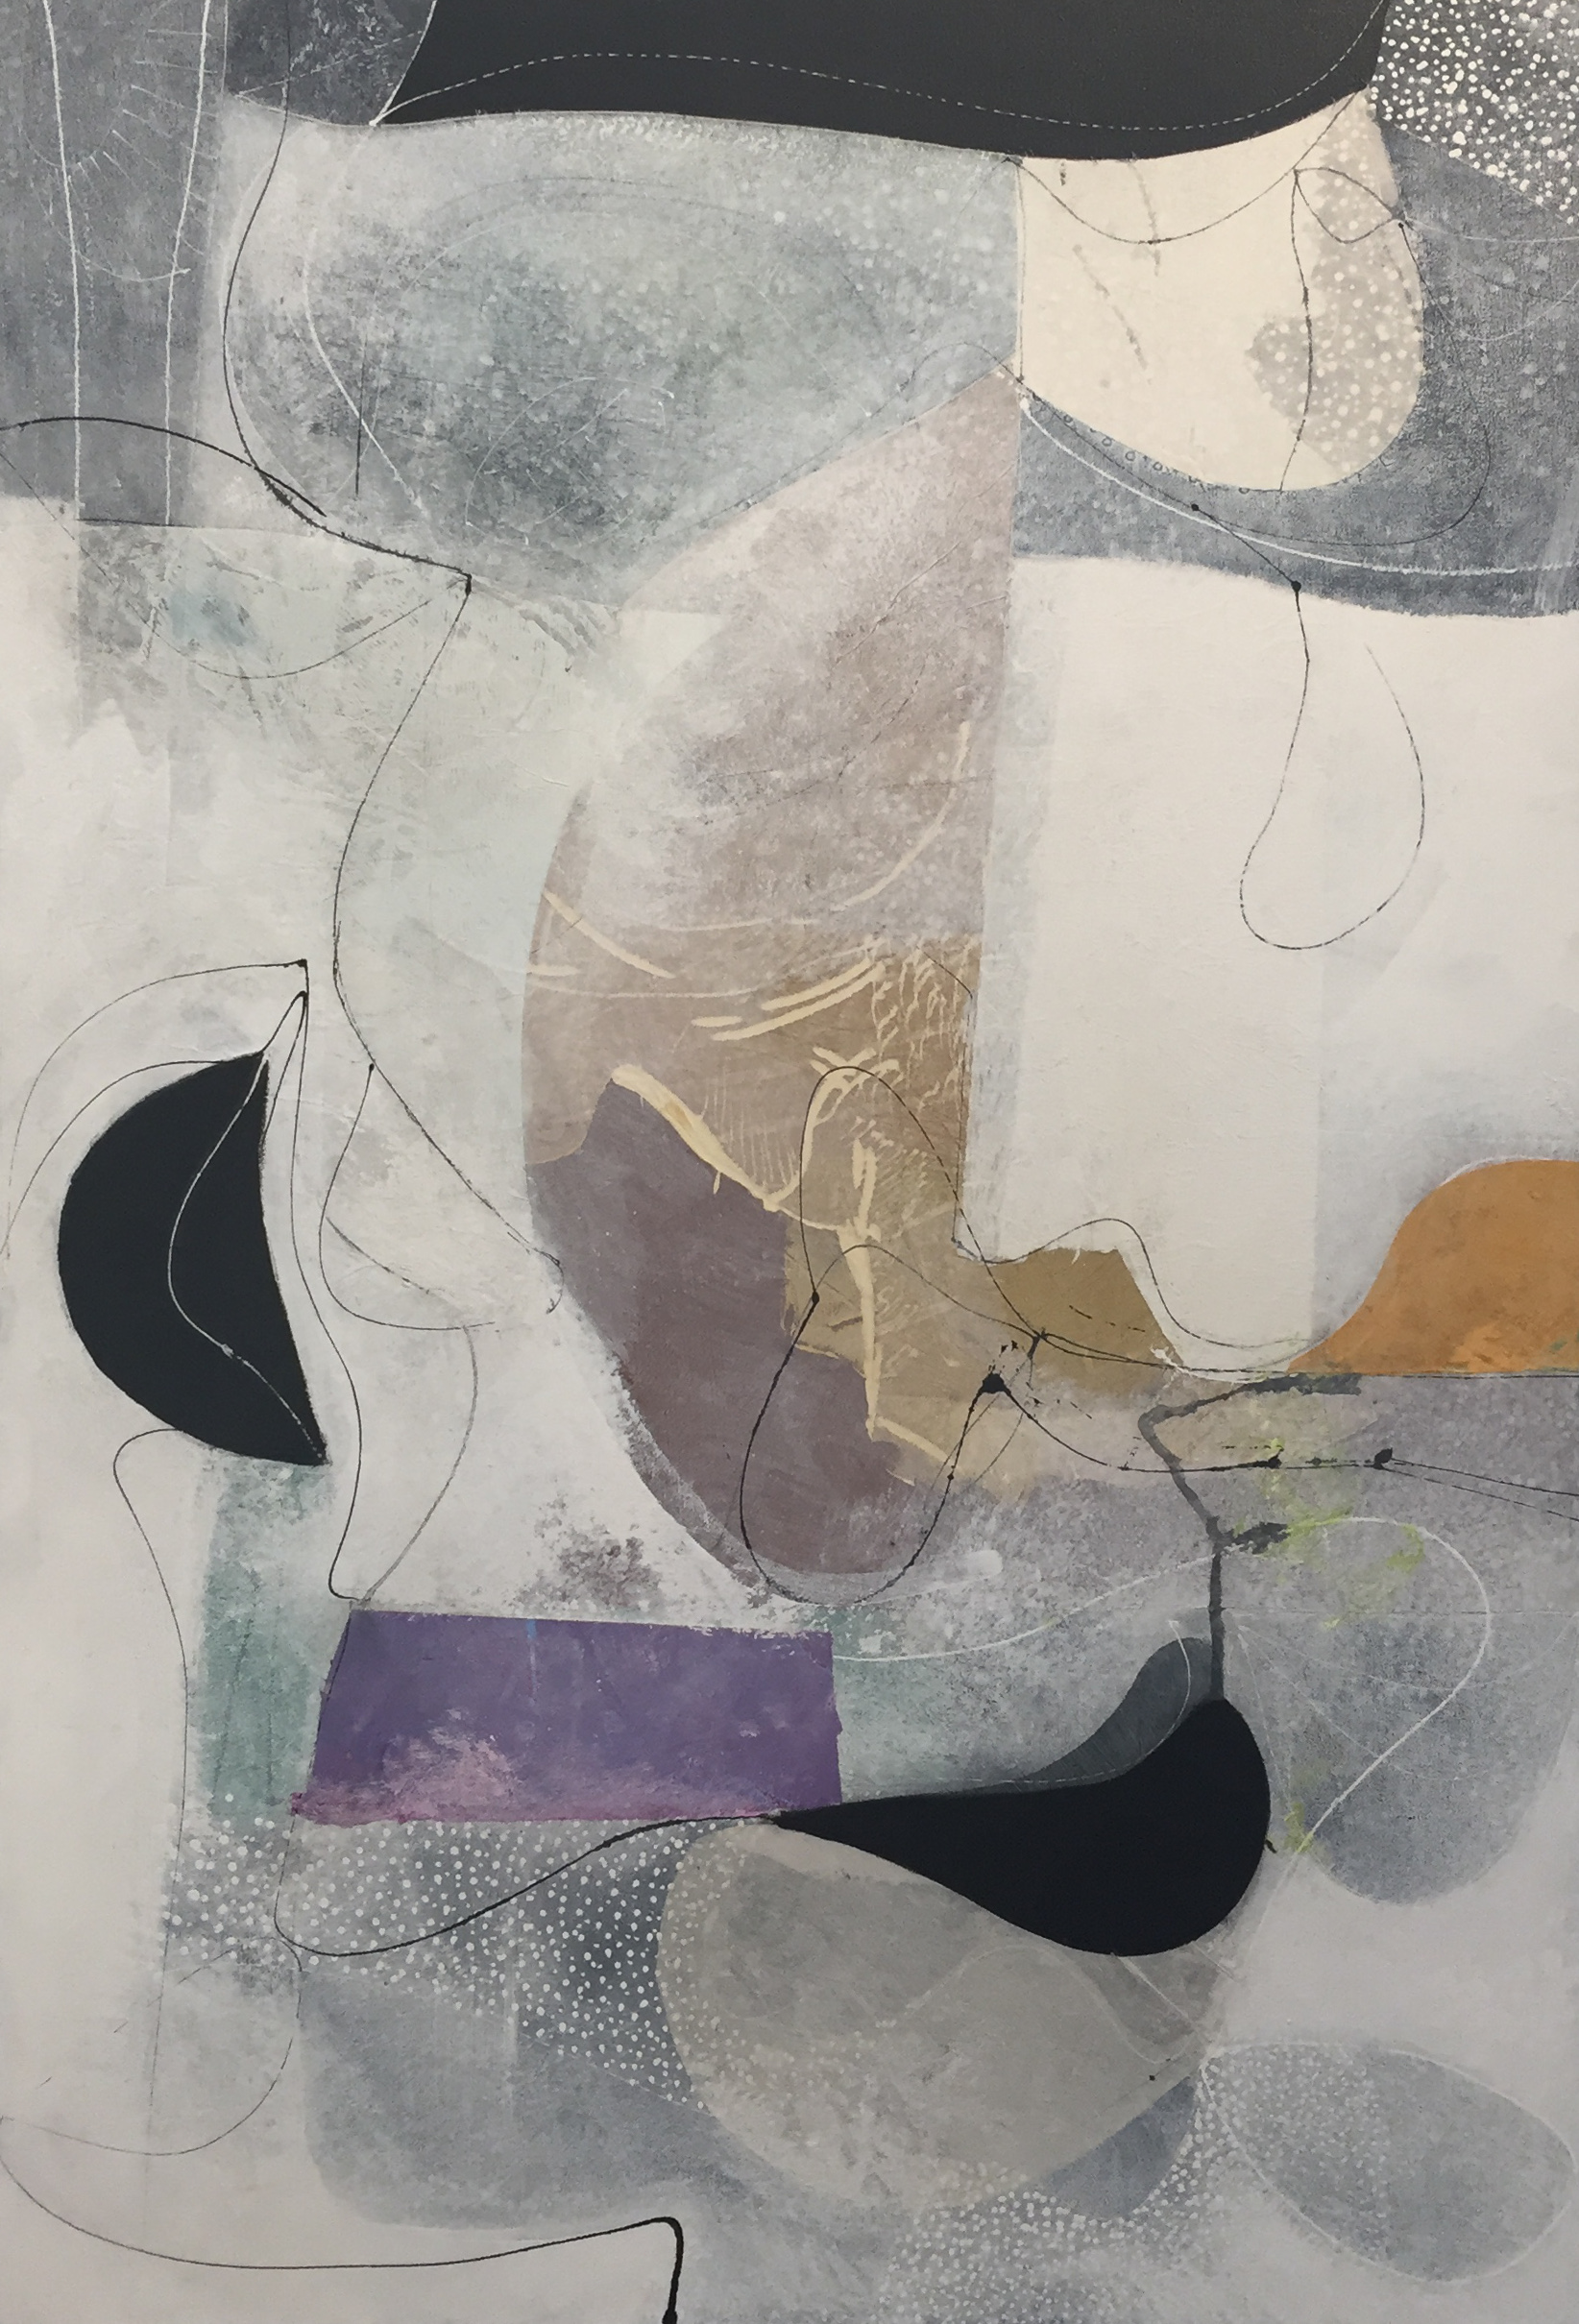 Charlie Hewitt , Silver Ghost,  2018, acrylic and paper collage on canvas on panel, 44 3/4 x 30 1/2 inches